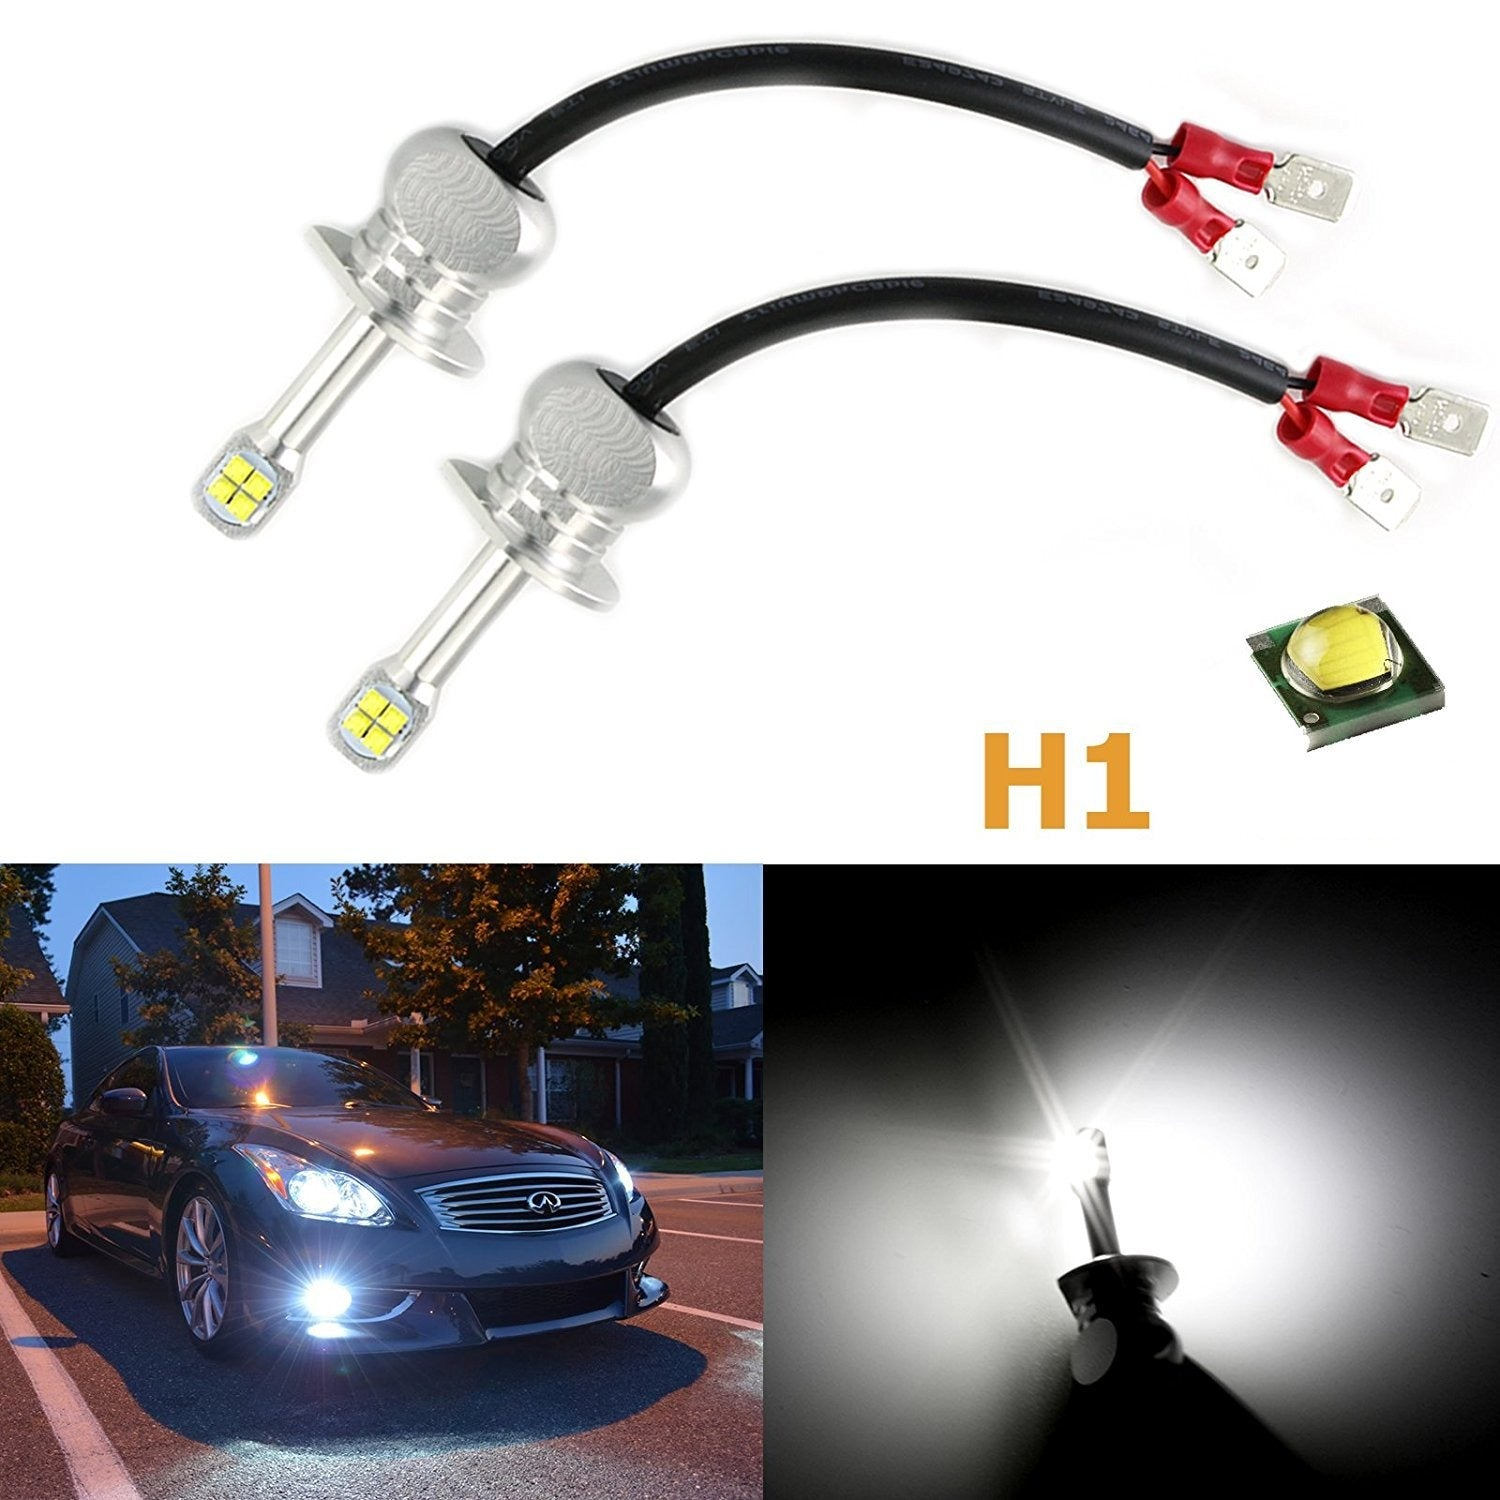 2) 80W CREE LED Bright White H1 LED DRL Driving Running